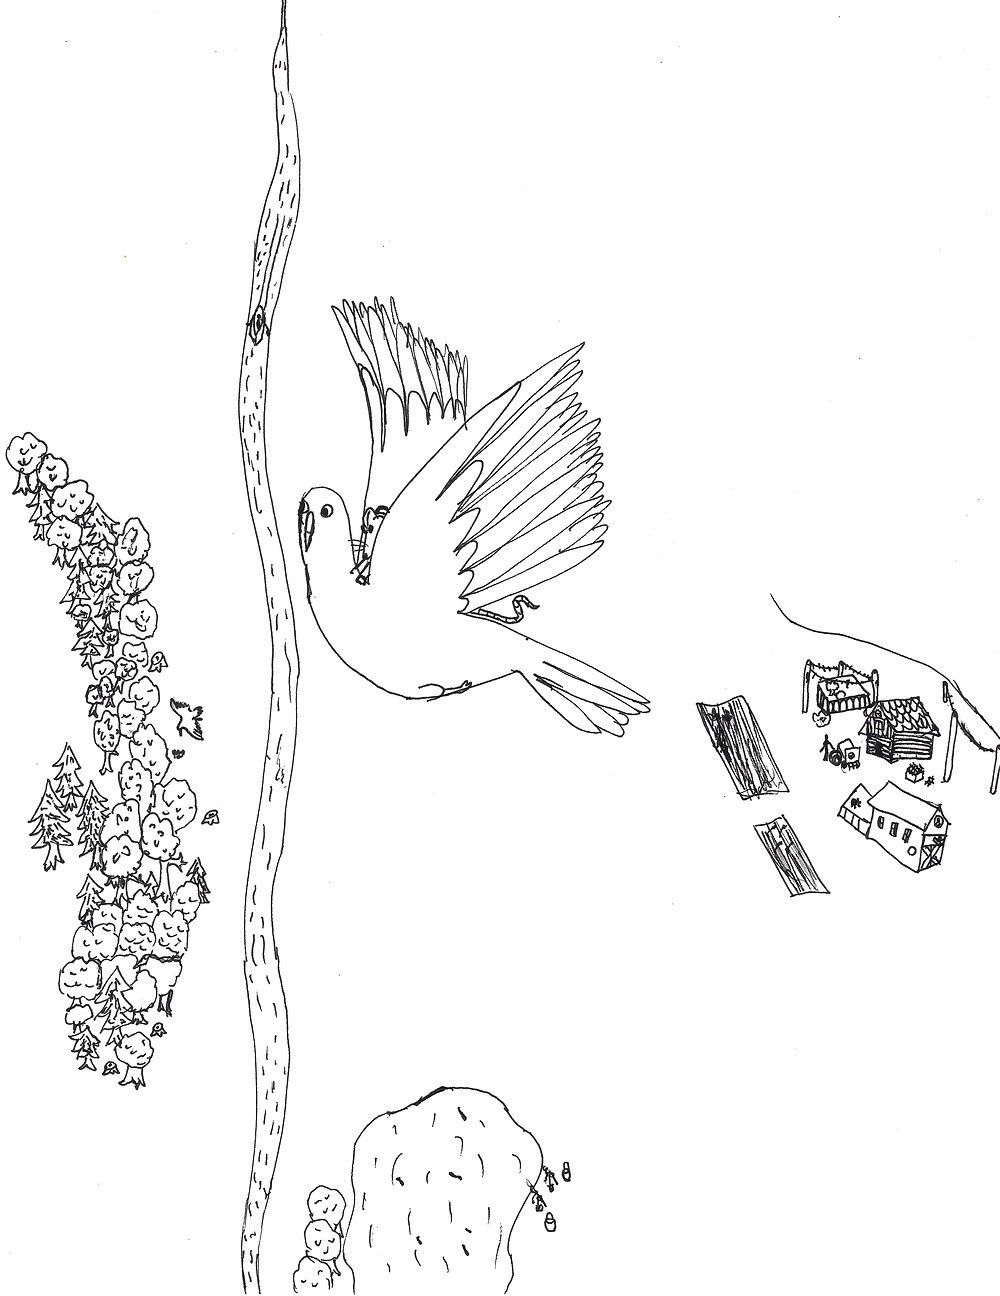 A mouse is flying over a farm on the back of a bird.